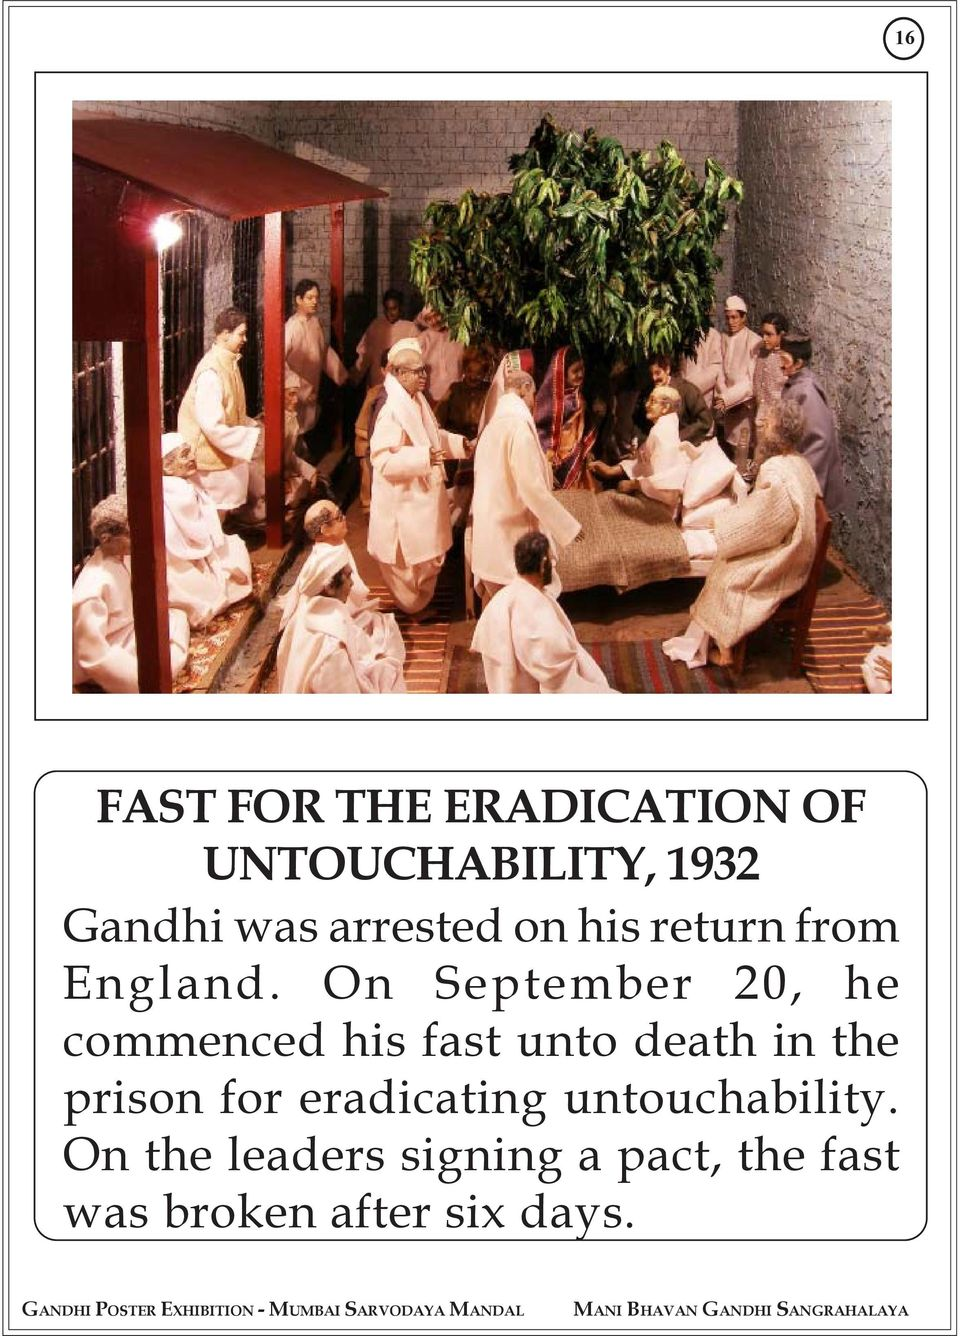 On September 20, he commenced his fast unto death in the prison